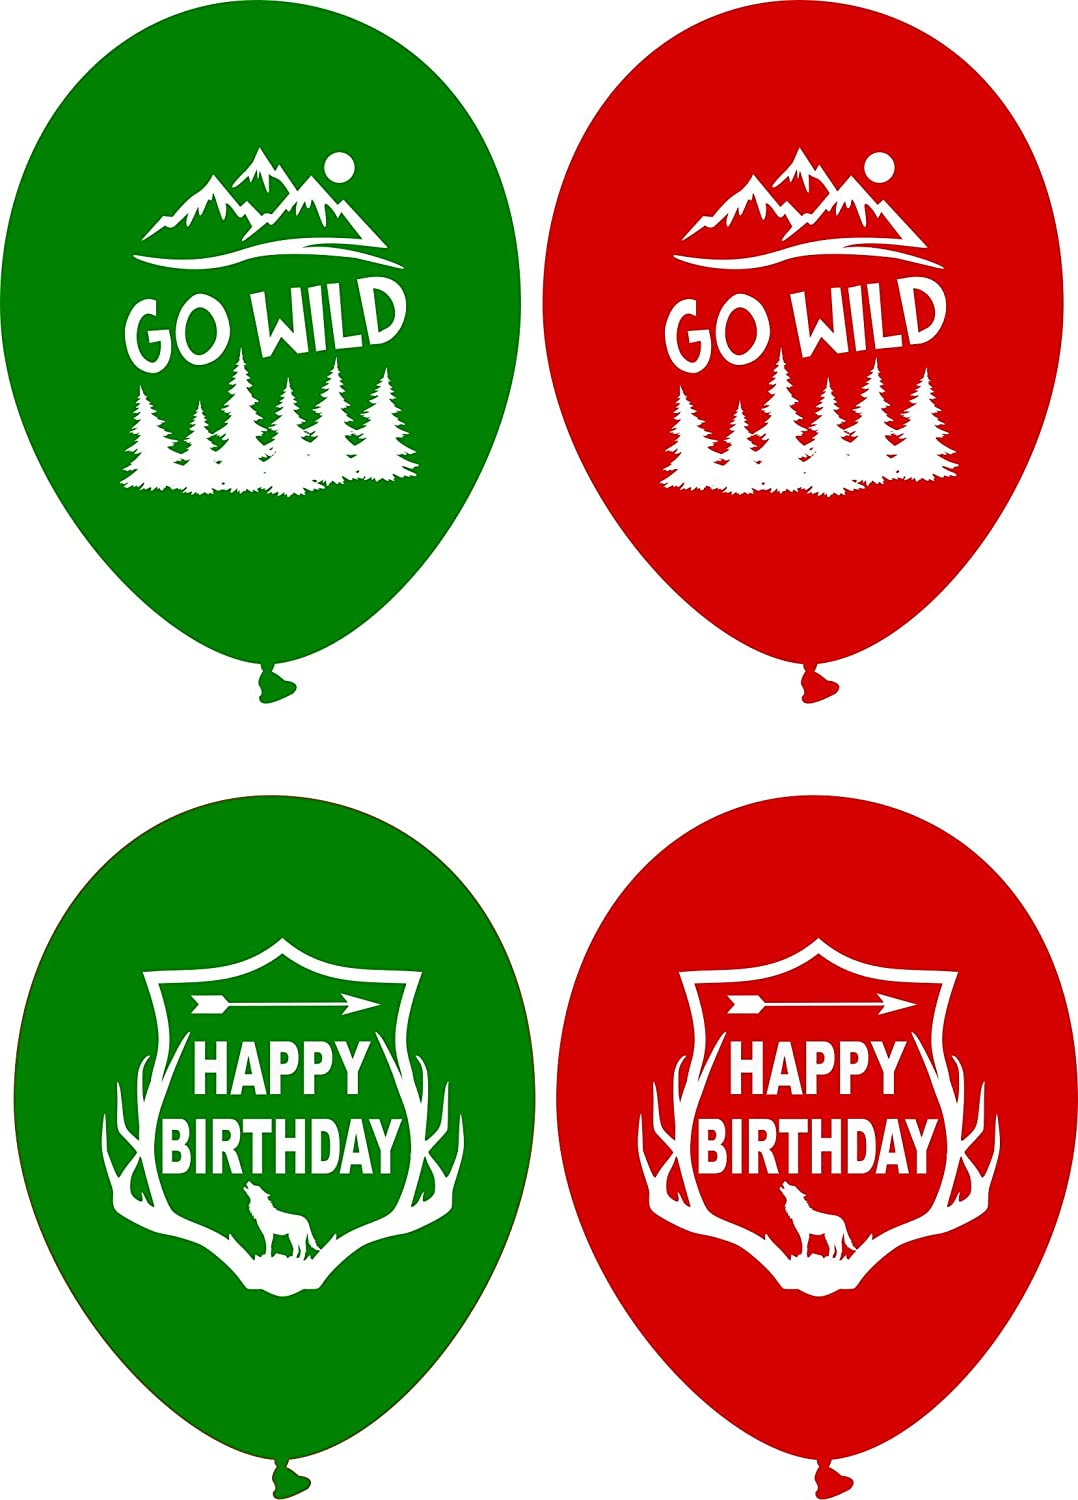 Gypsy Jades Lumberjack Birthday Party Balloons Flannel Party Favors Big 12 Latex Balloons 36 pcs Woodland Go Wild One Party Supplies